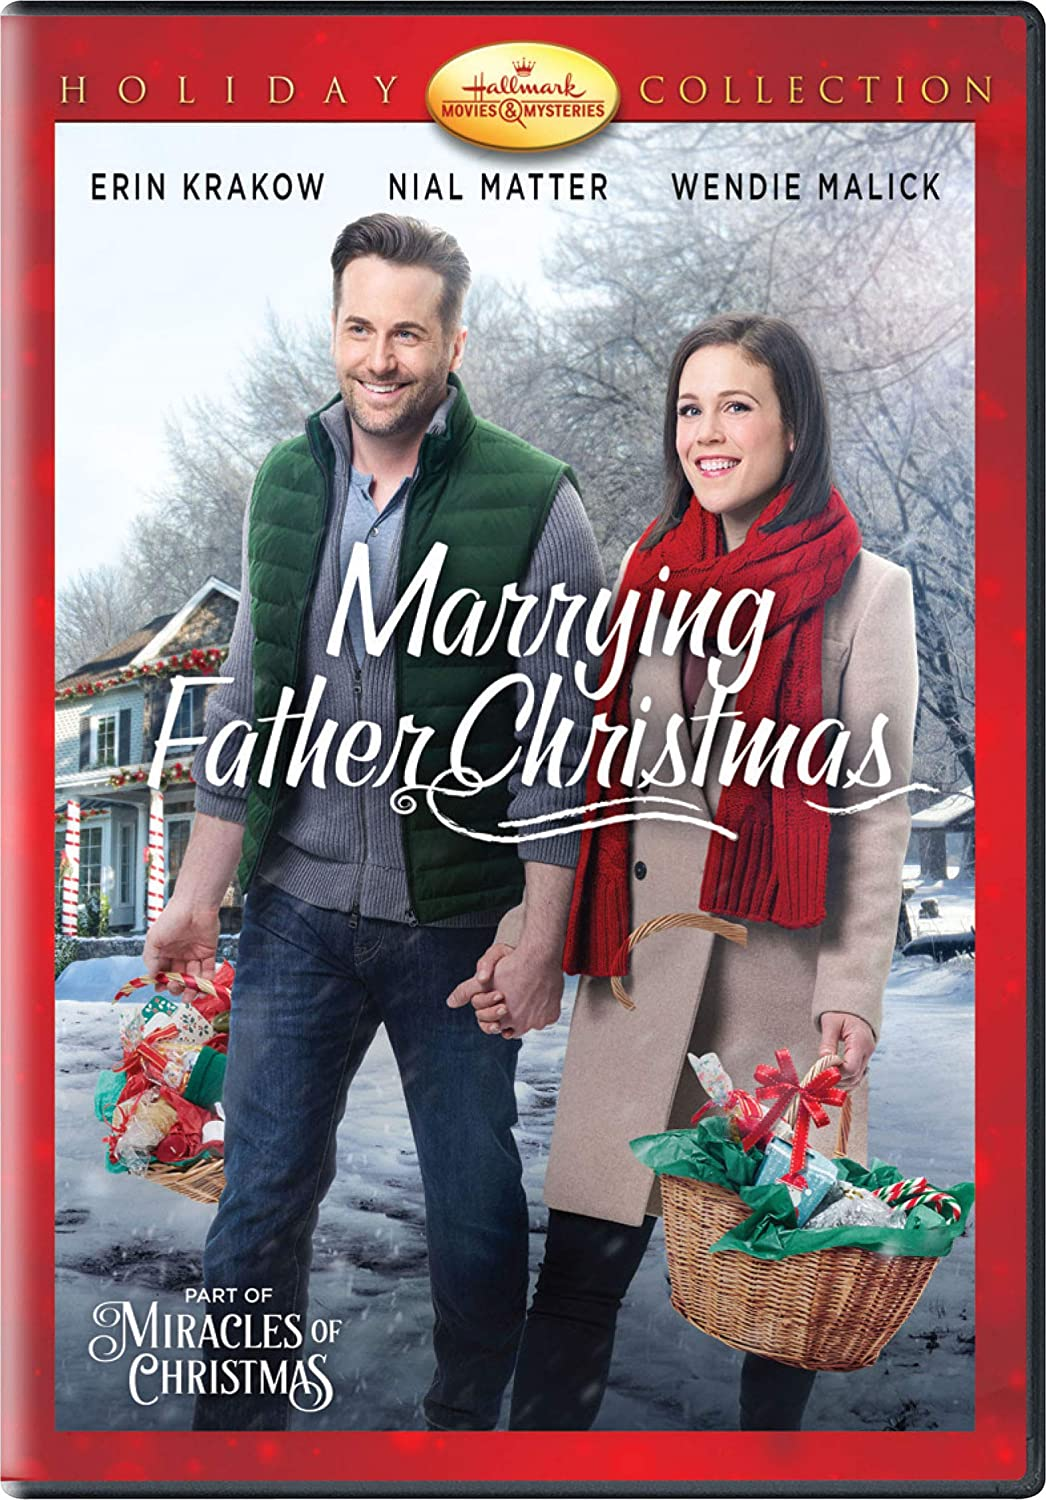 Marrying Father Christmas 2020 Amazon.com: Marrying Father Christmas: Erin Krakow, Niall Matter